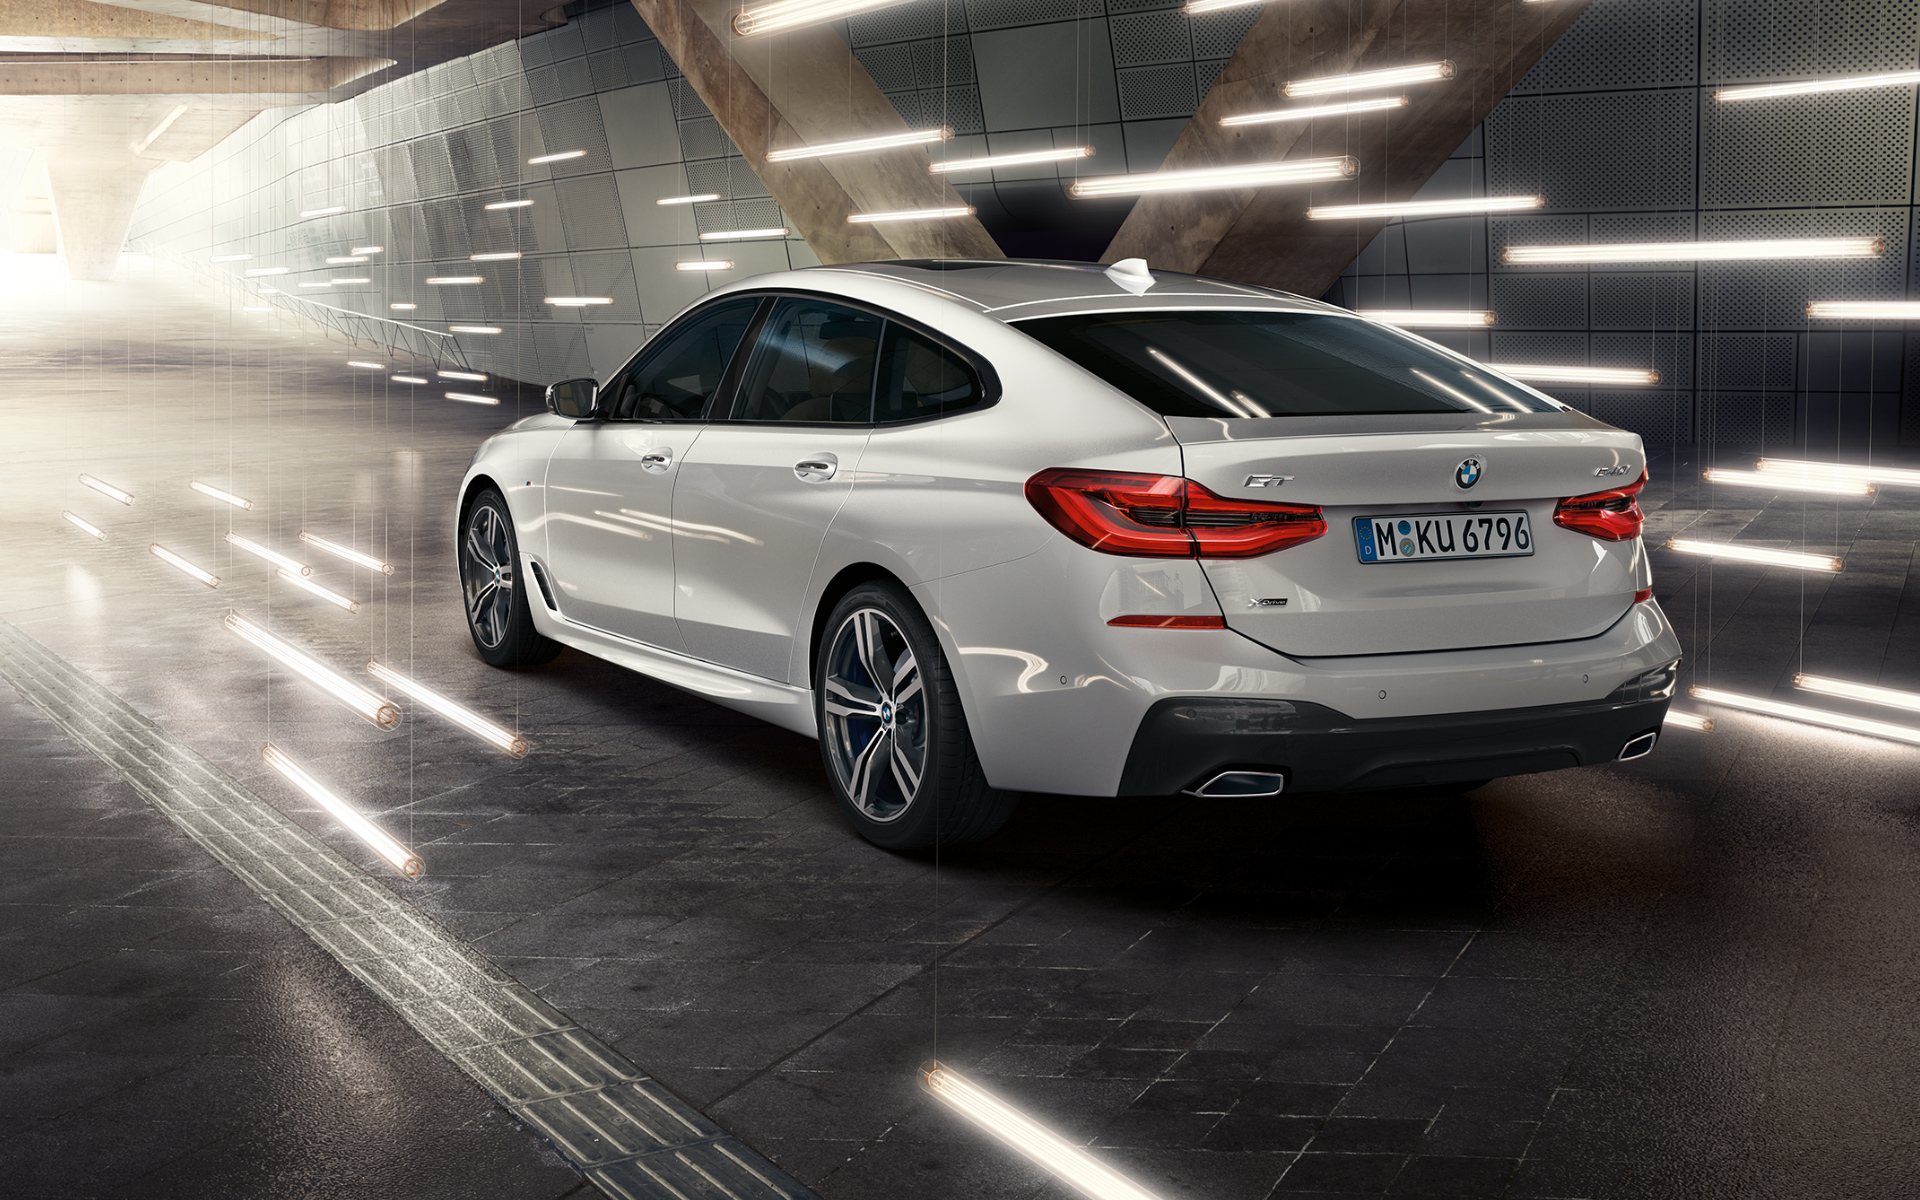 download wallpapers of the bmw 6 series gran turismo. Black Bedroom Furniture Sets. Home Design Ideas